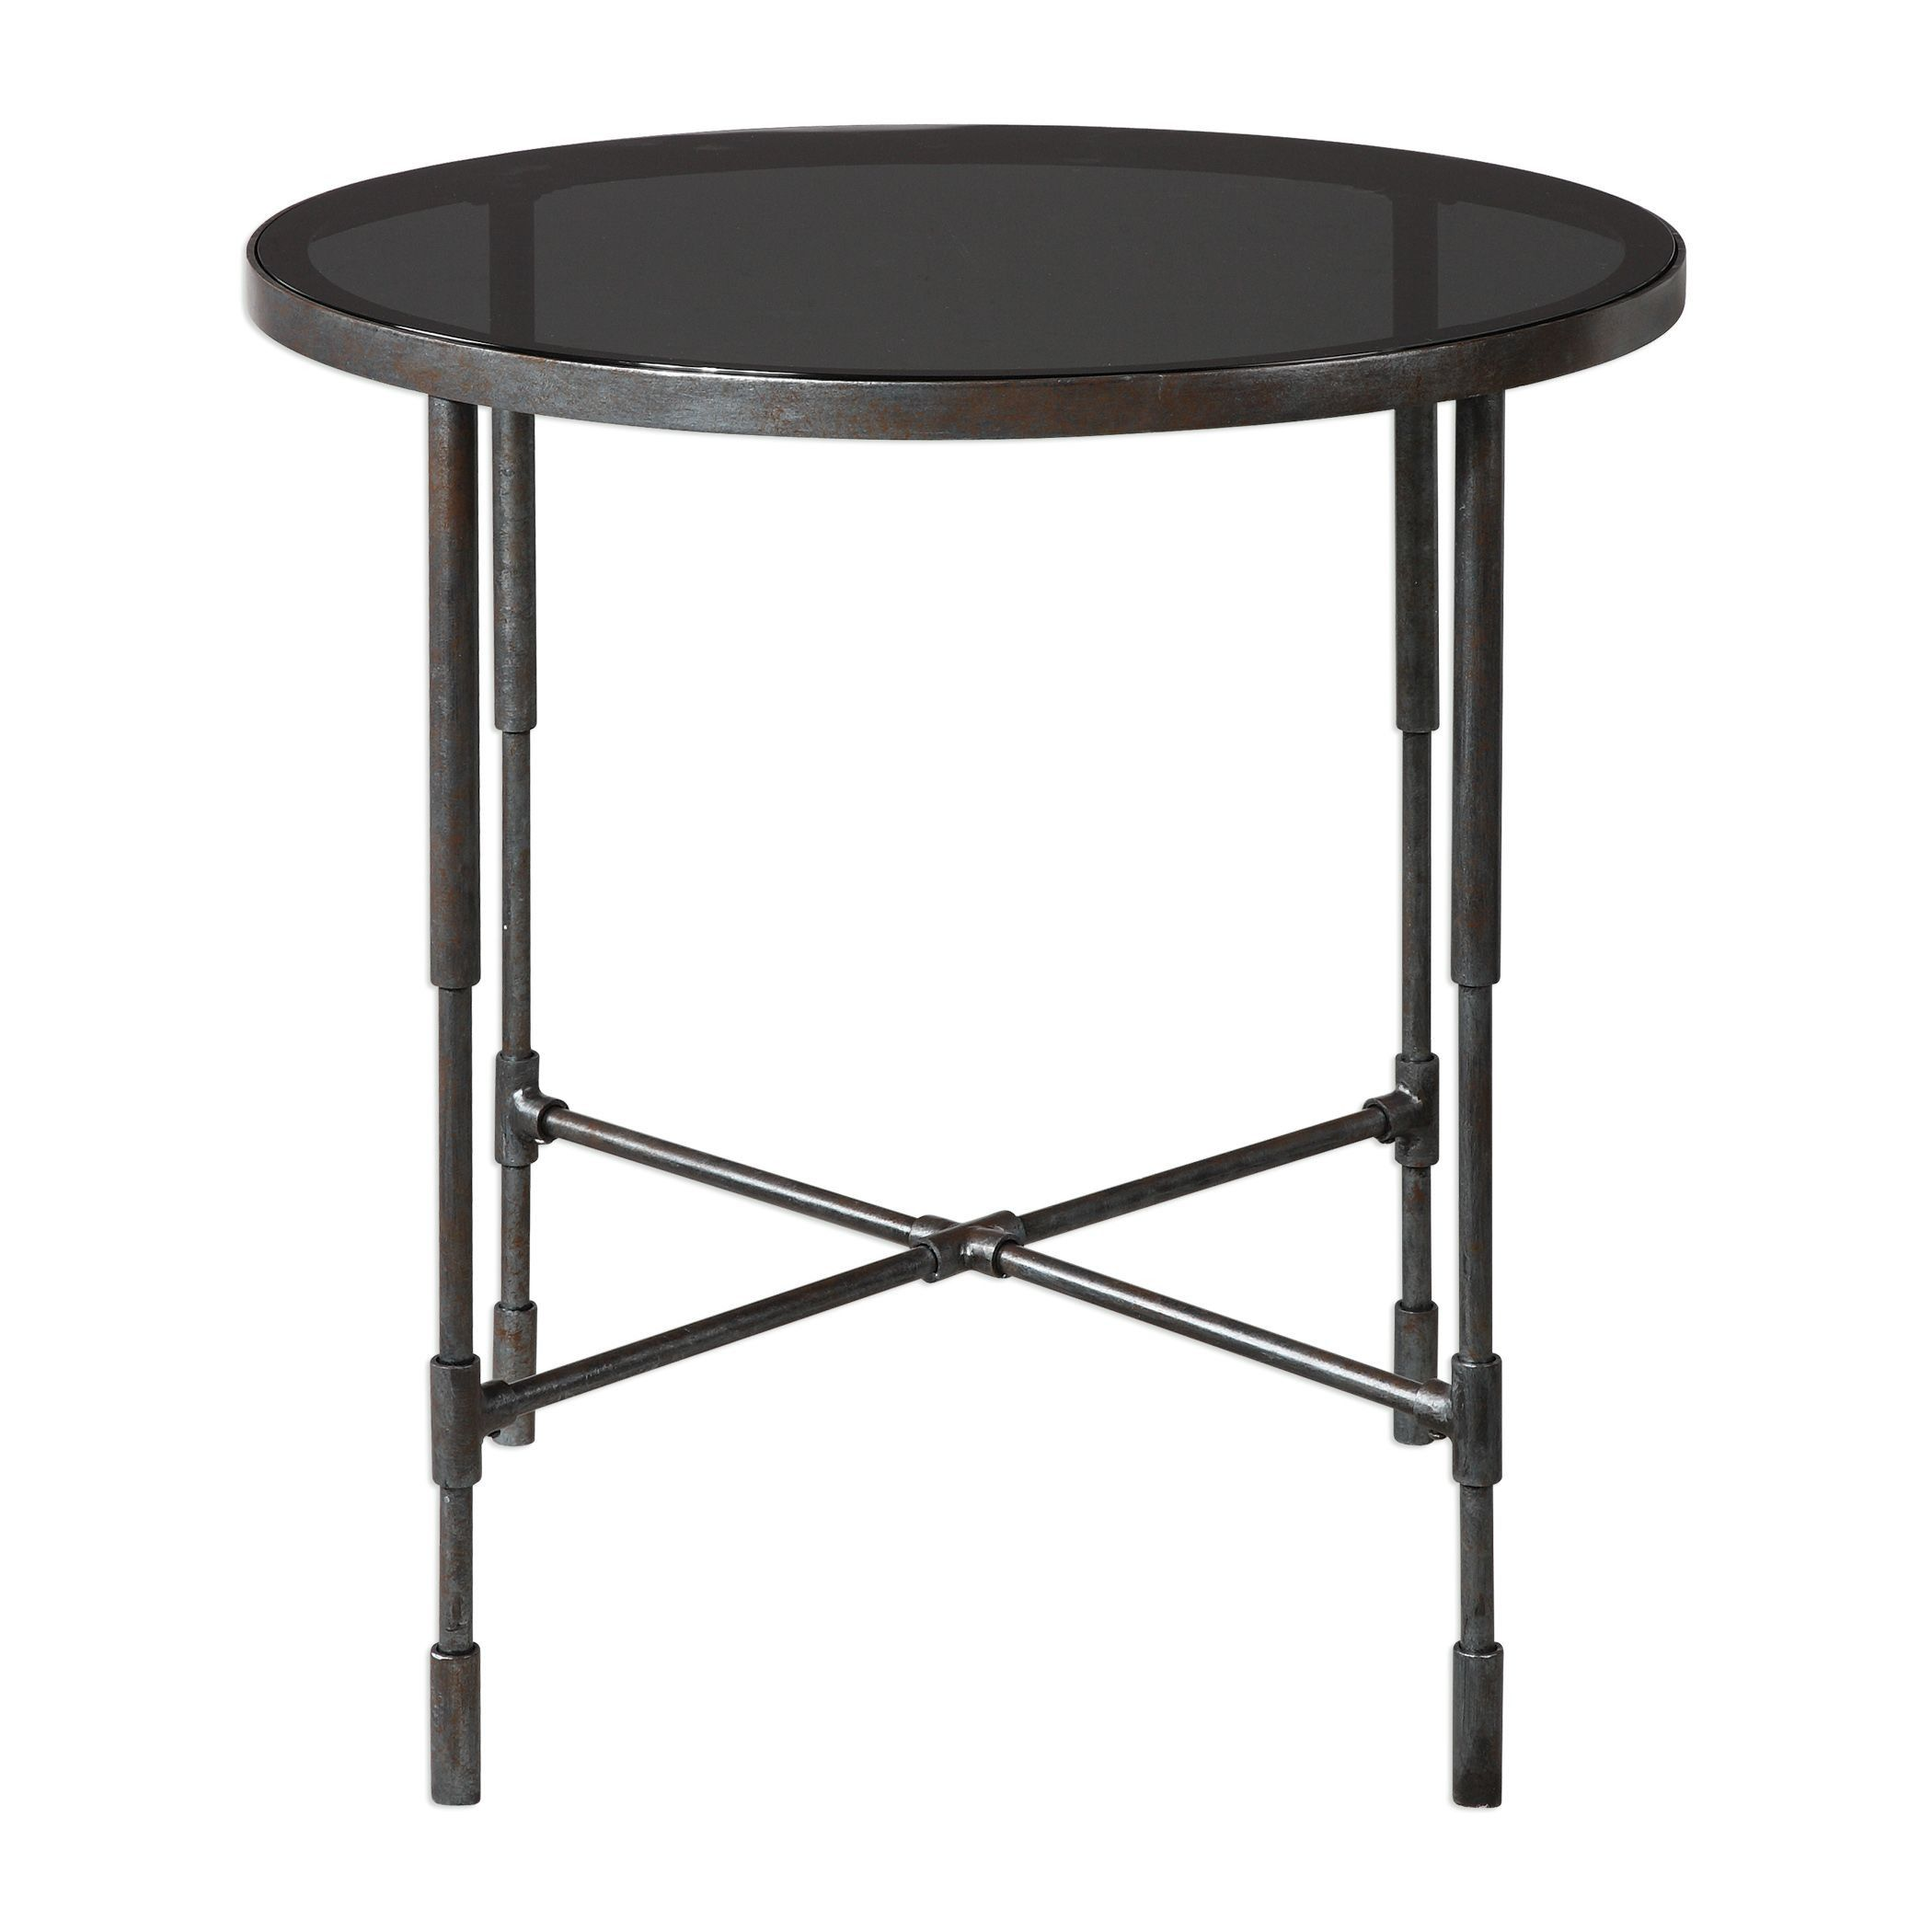 vande aged steel accent table uttermost rubati uttm tiffany shades small nest tables ikea console cabinet market umbrella stand holland furniture inch tablecloth gold metal and